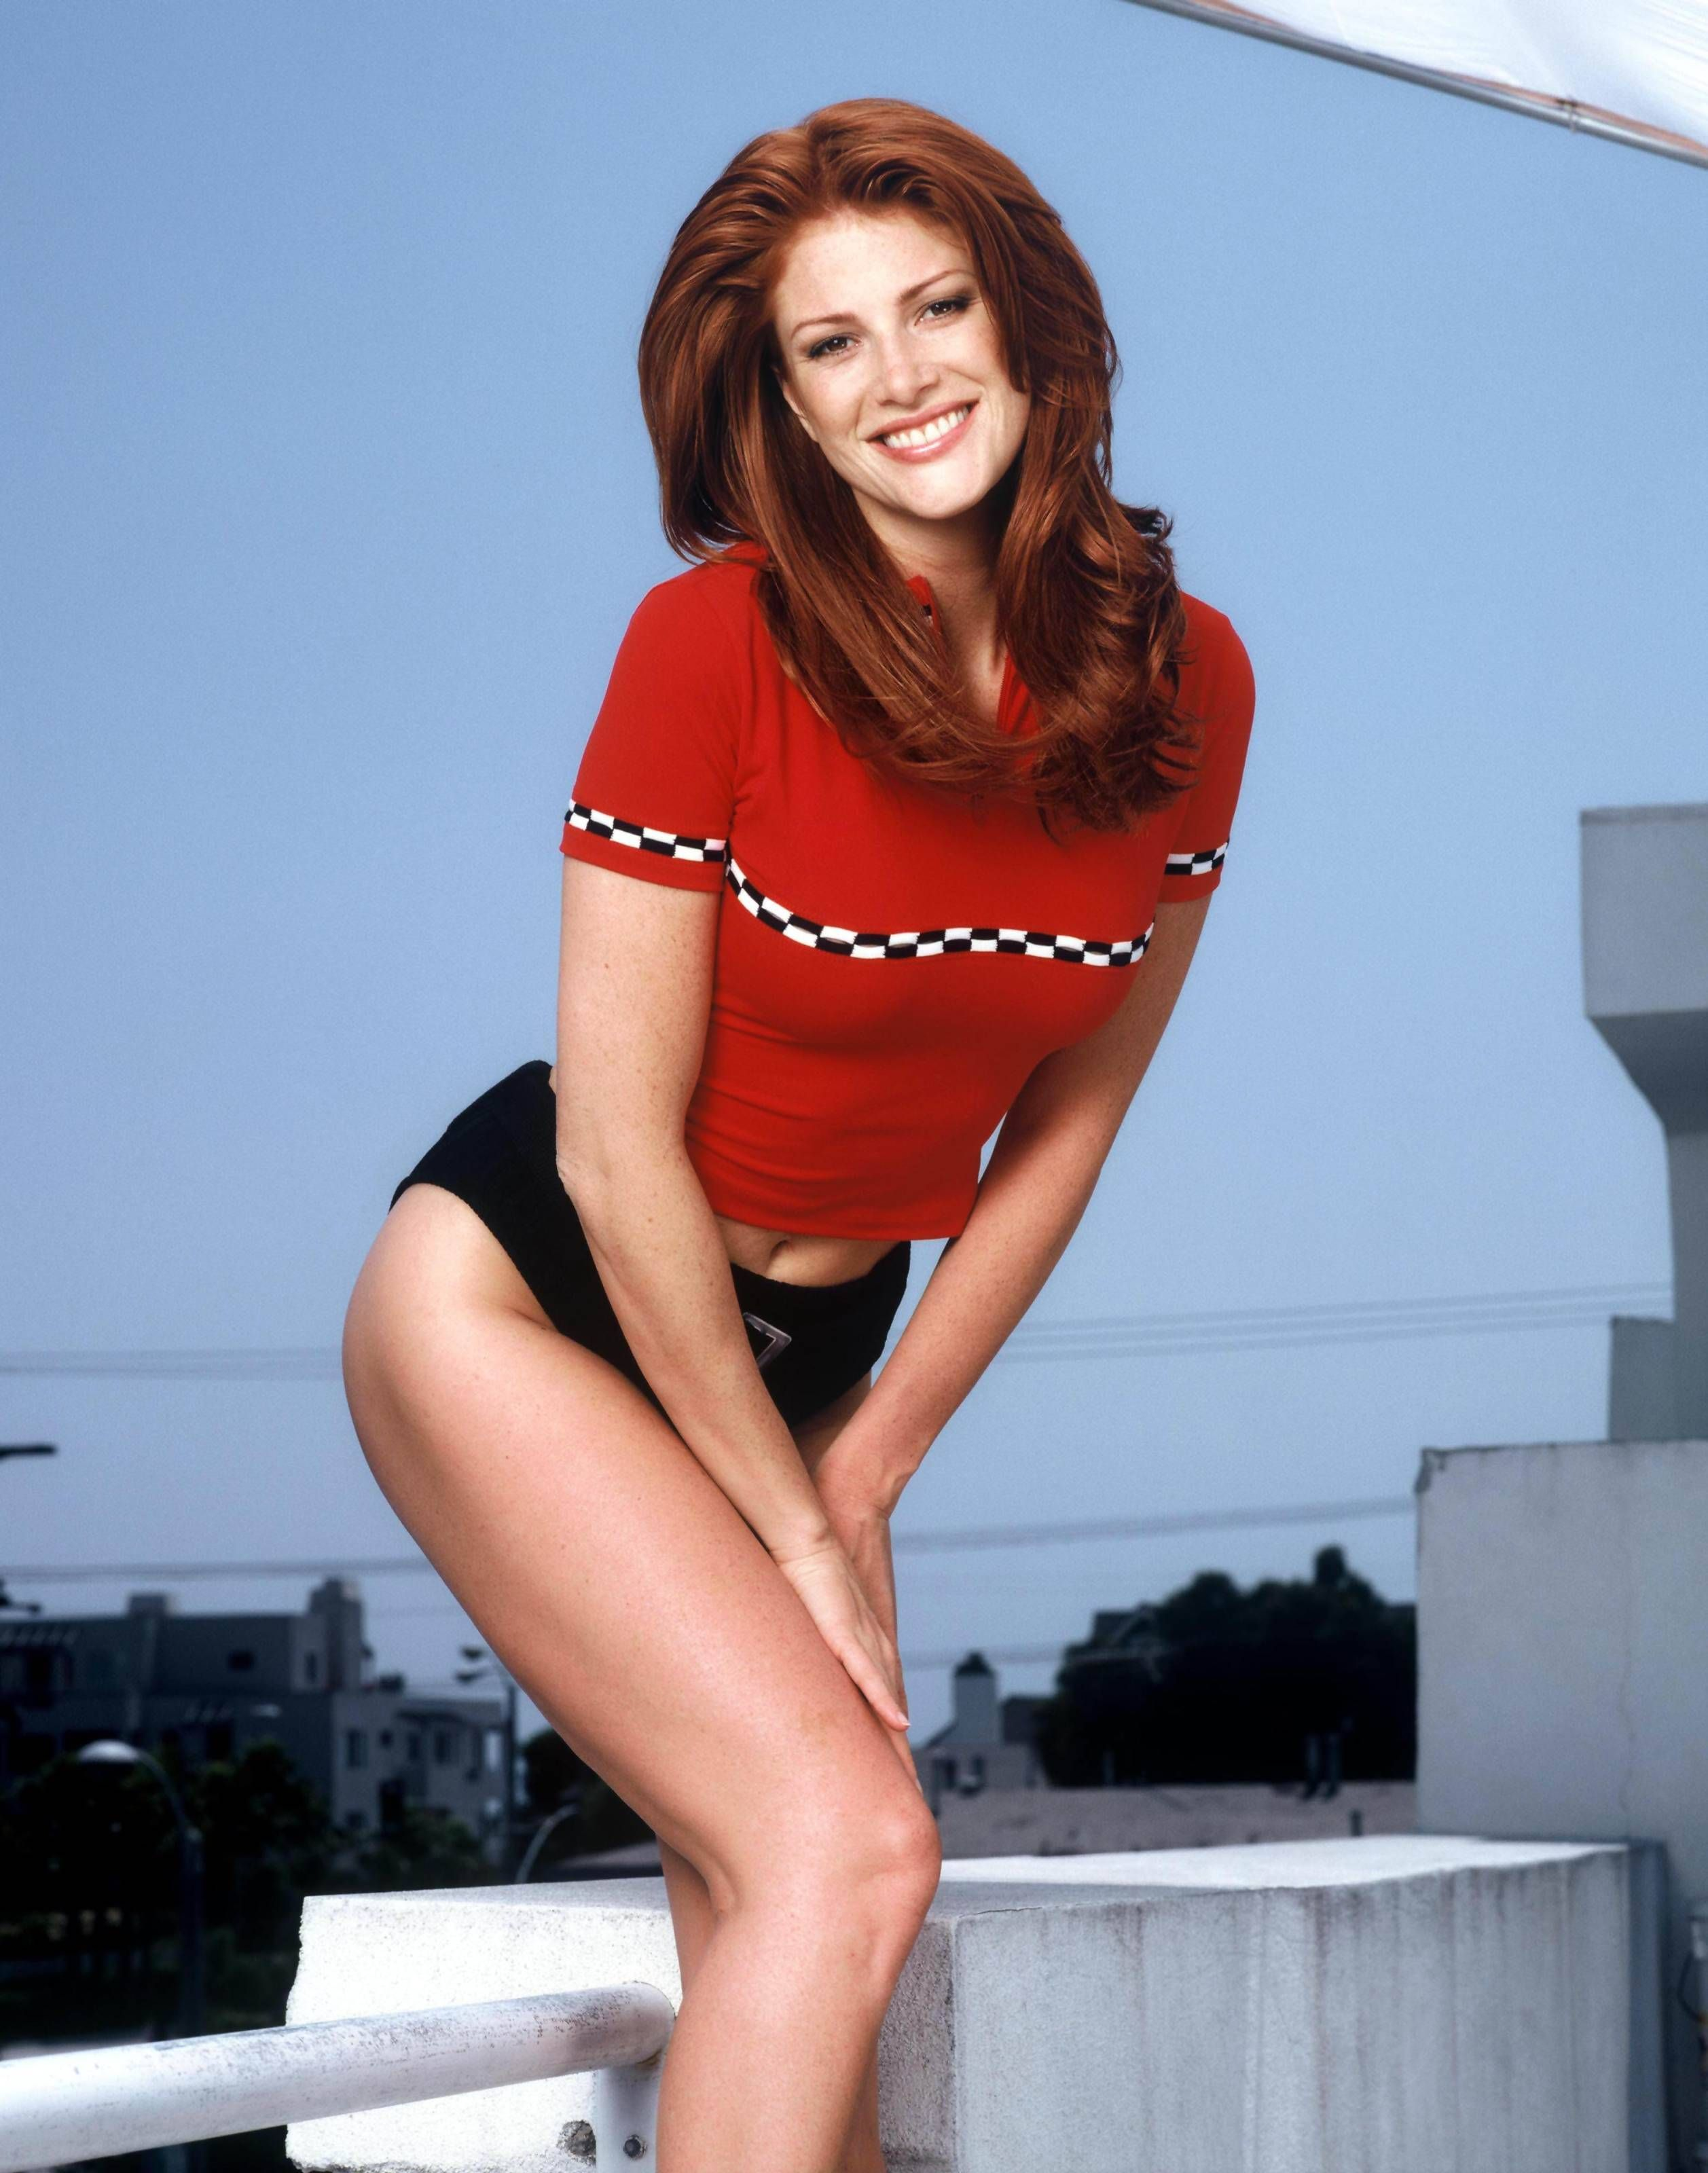 angie everhart - rooftop shoot 0005; 2515 x 3200 (@21%) | angie